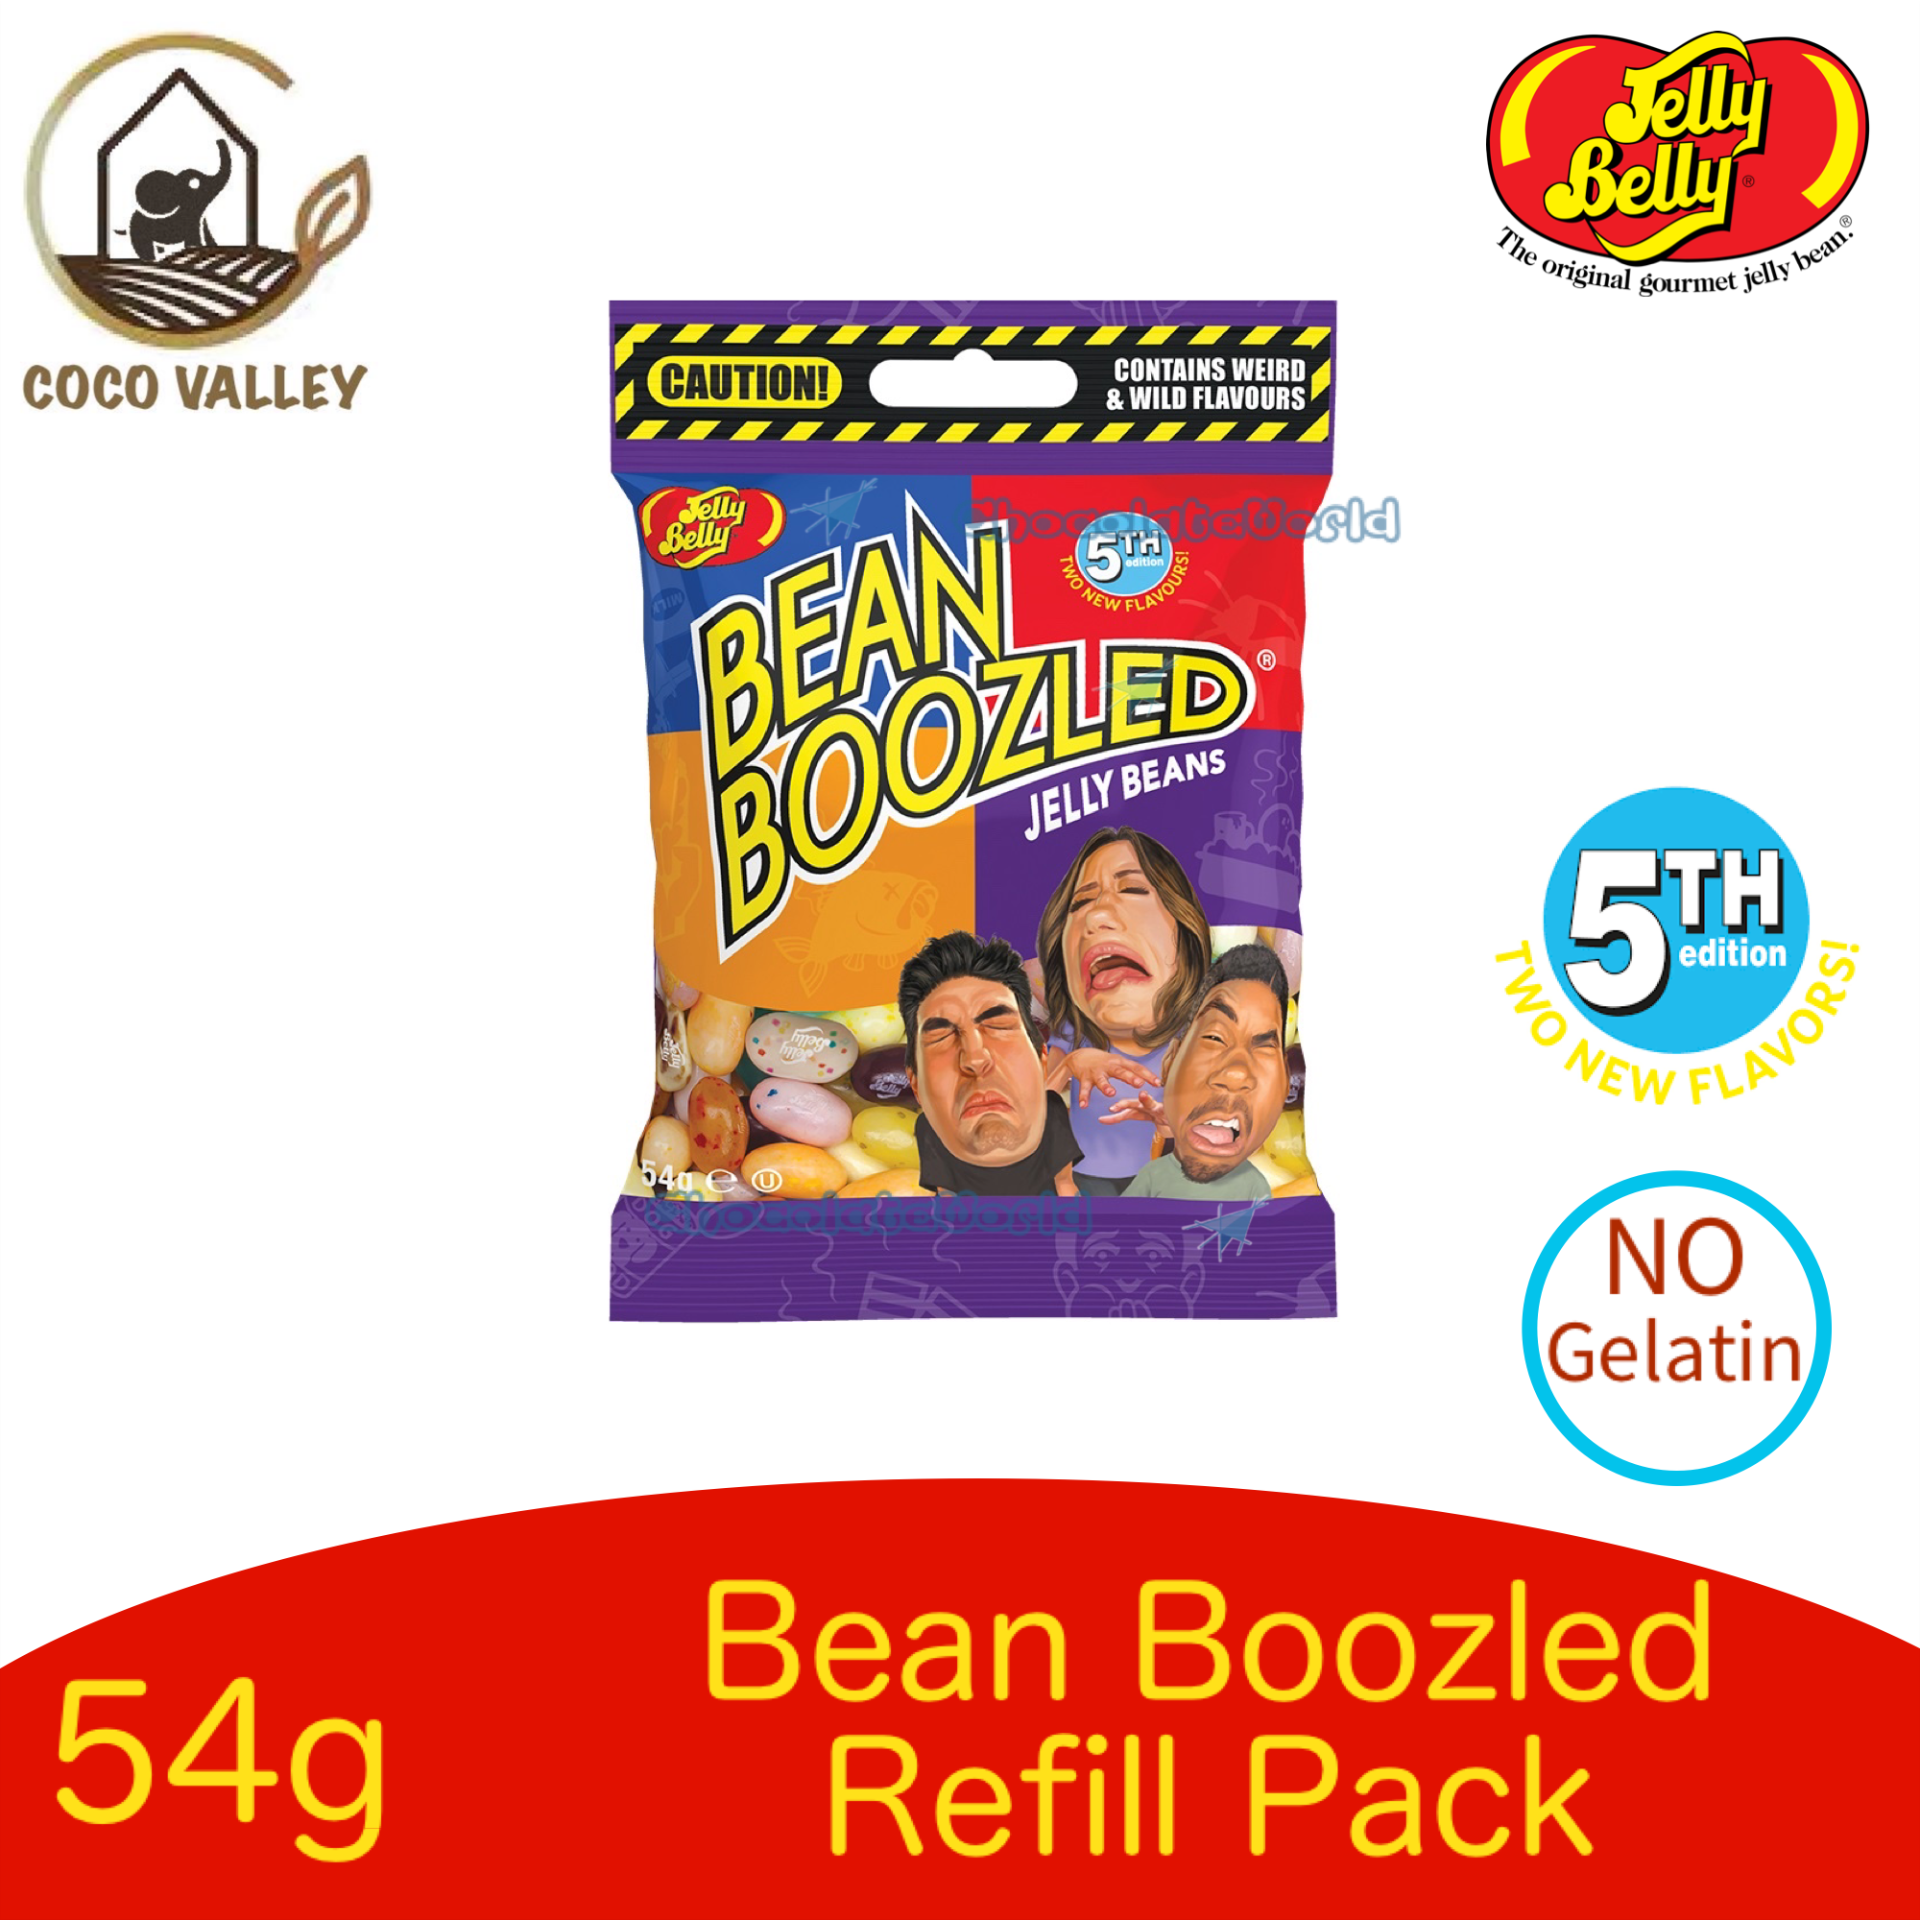 Jelly Belly 5th Edition Bean Boozled Jelly Beans 54g